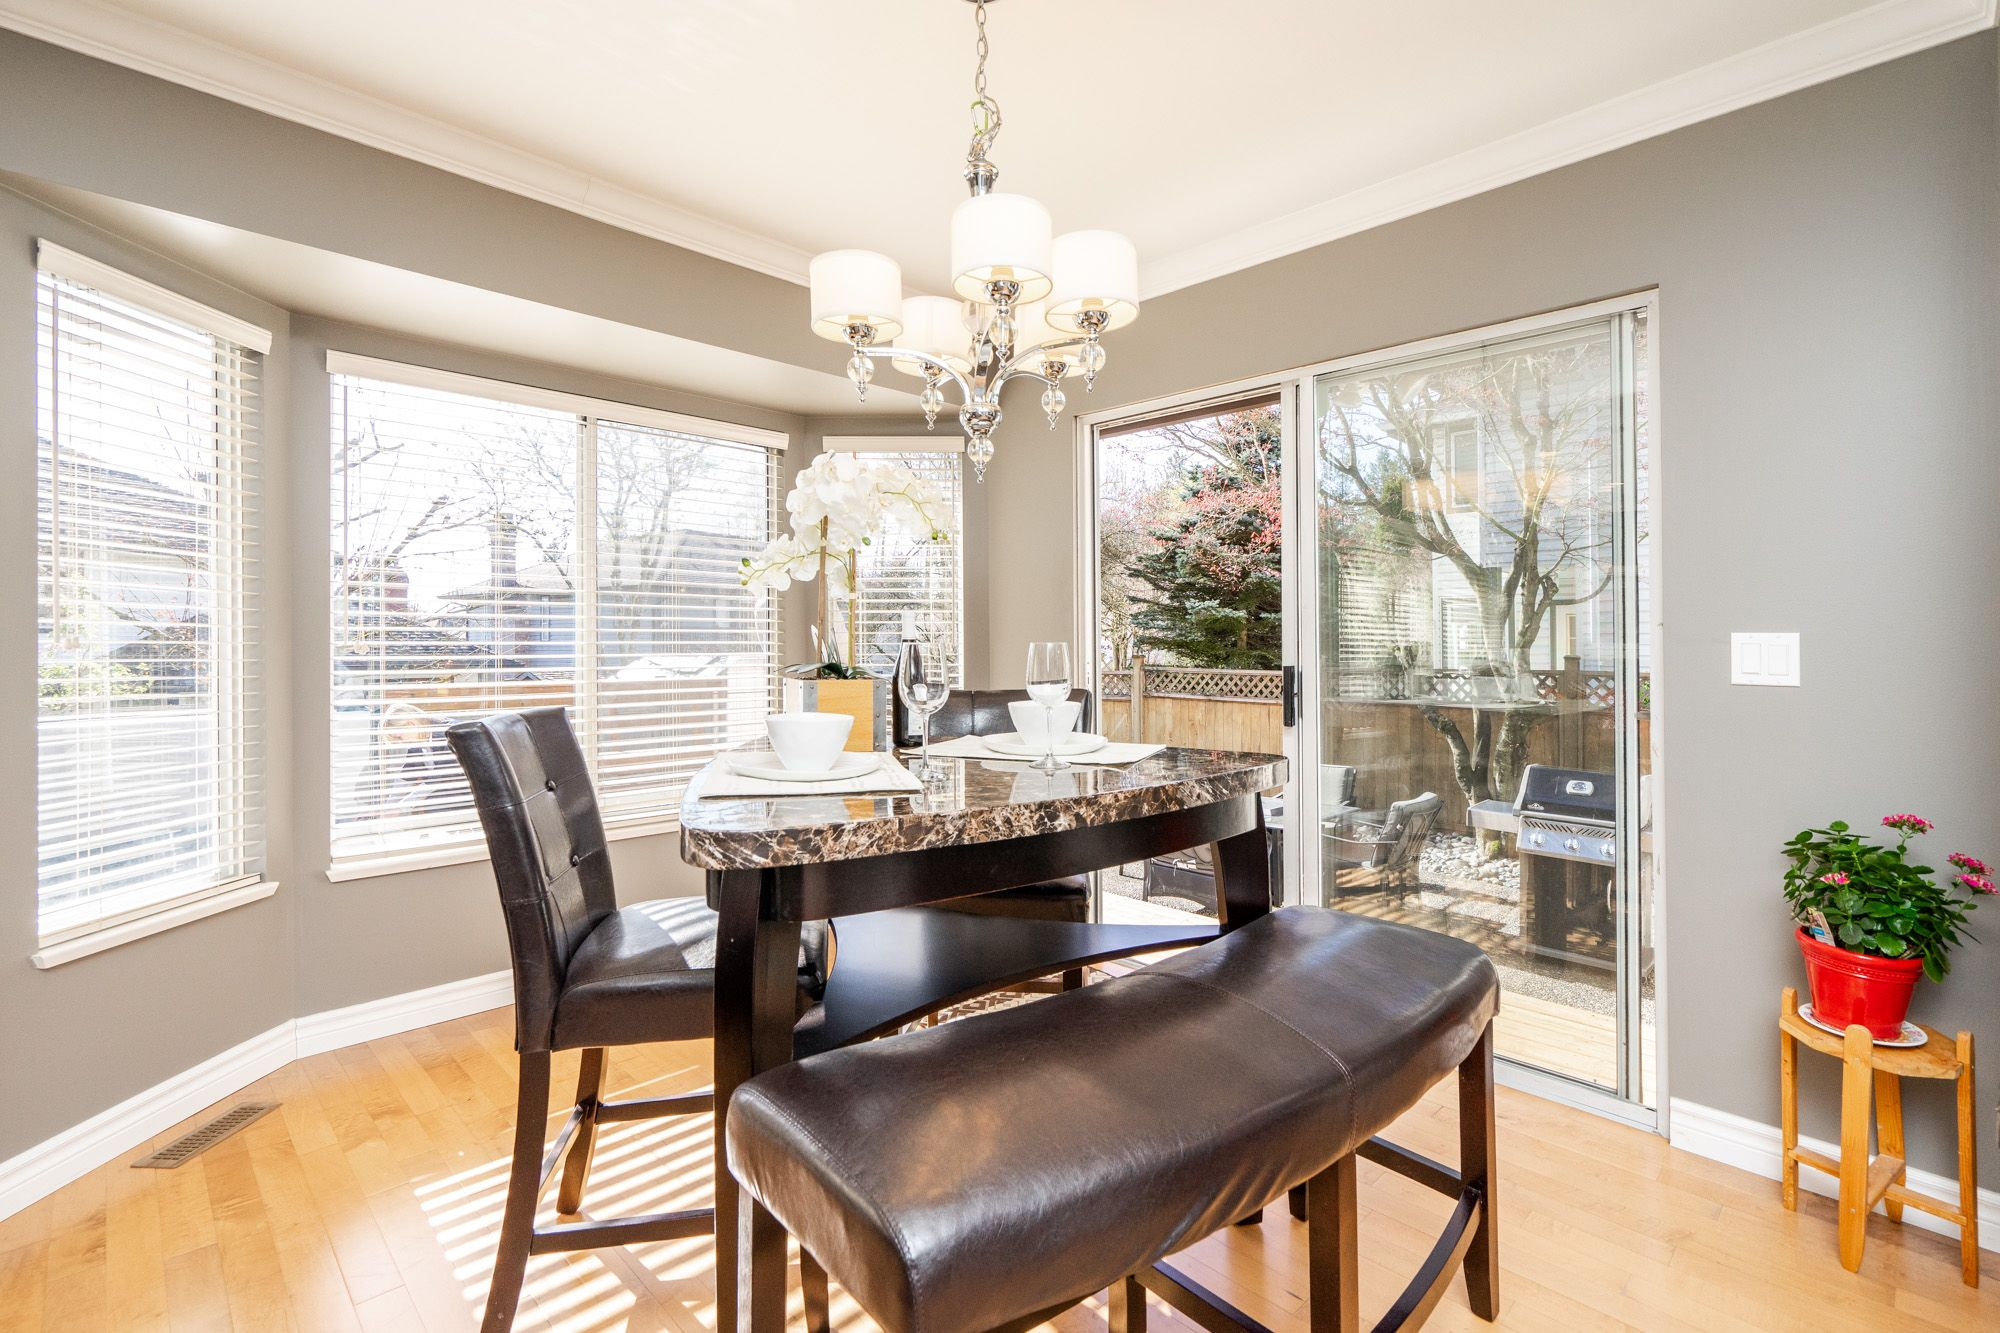 """Photo 8: Photos: 8448 213 Street in Langley: Walnut Grove House for sale in """"Forest Hills"""" : MLS®# R2259409"""